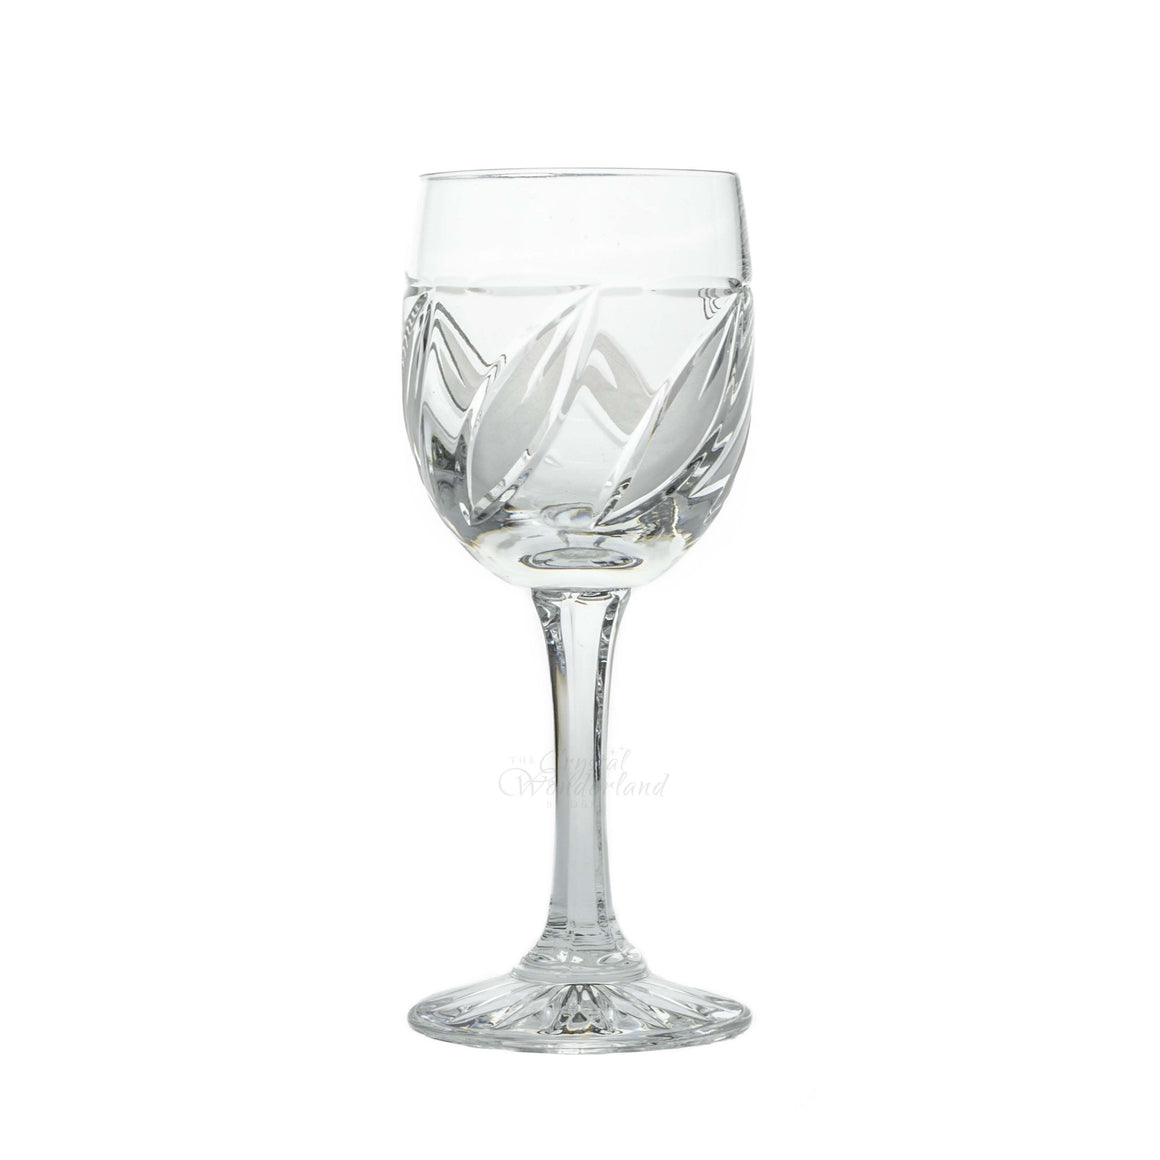 Crystal Leaves Red Wine Glasses, Set of 6 - The Crystal Wonderland